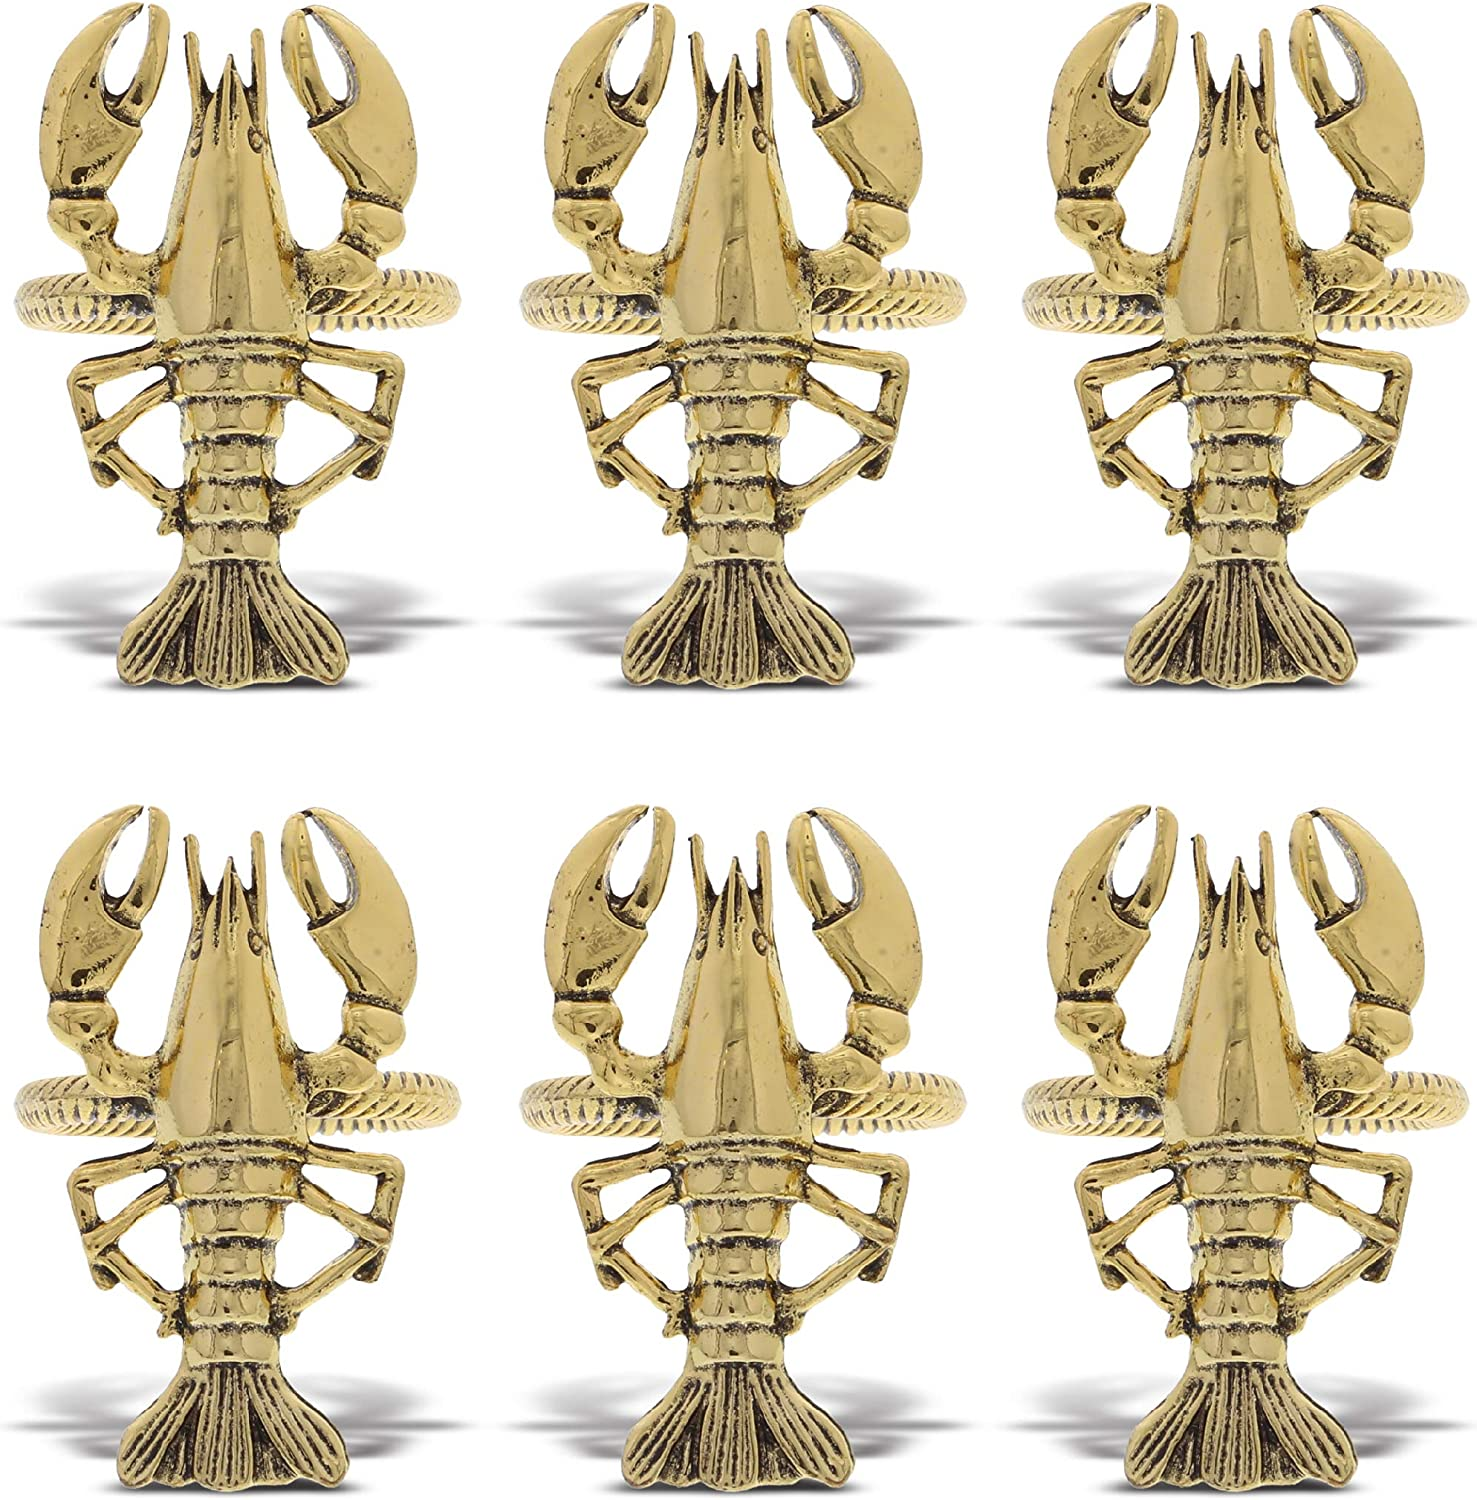 KitchaBon Gold Napkin Rings Set of 6, Table Setting Centerpiece Decor Napkins Ring Holders, Napkin Ring Packs for Family Holiday Dinner, Fancy Banquet & Wedding Decorations for Reception- Lobster